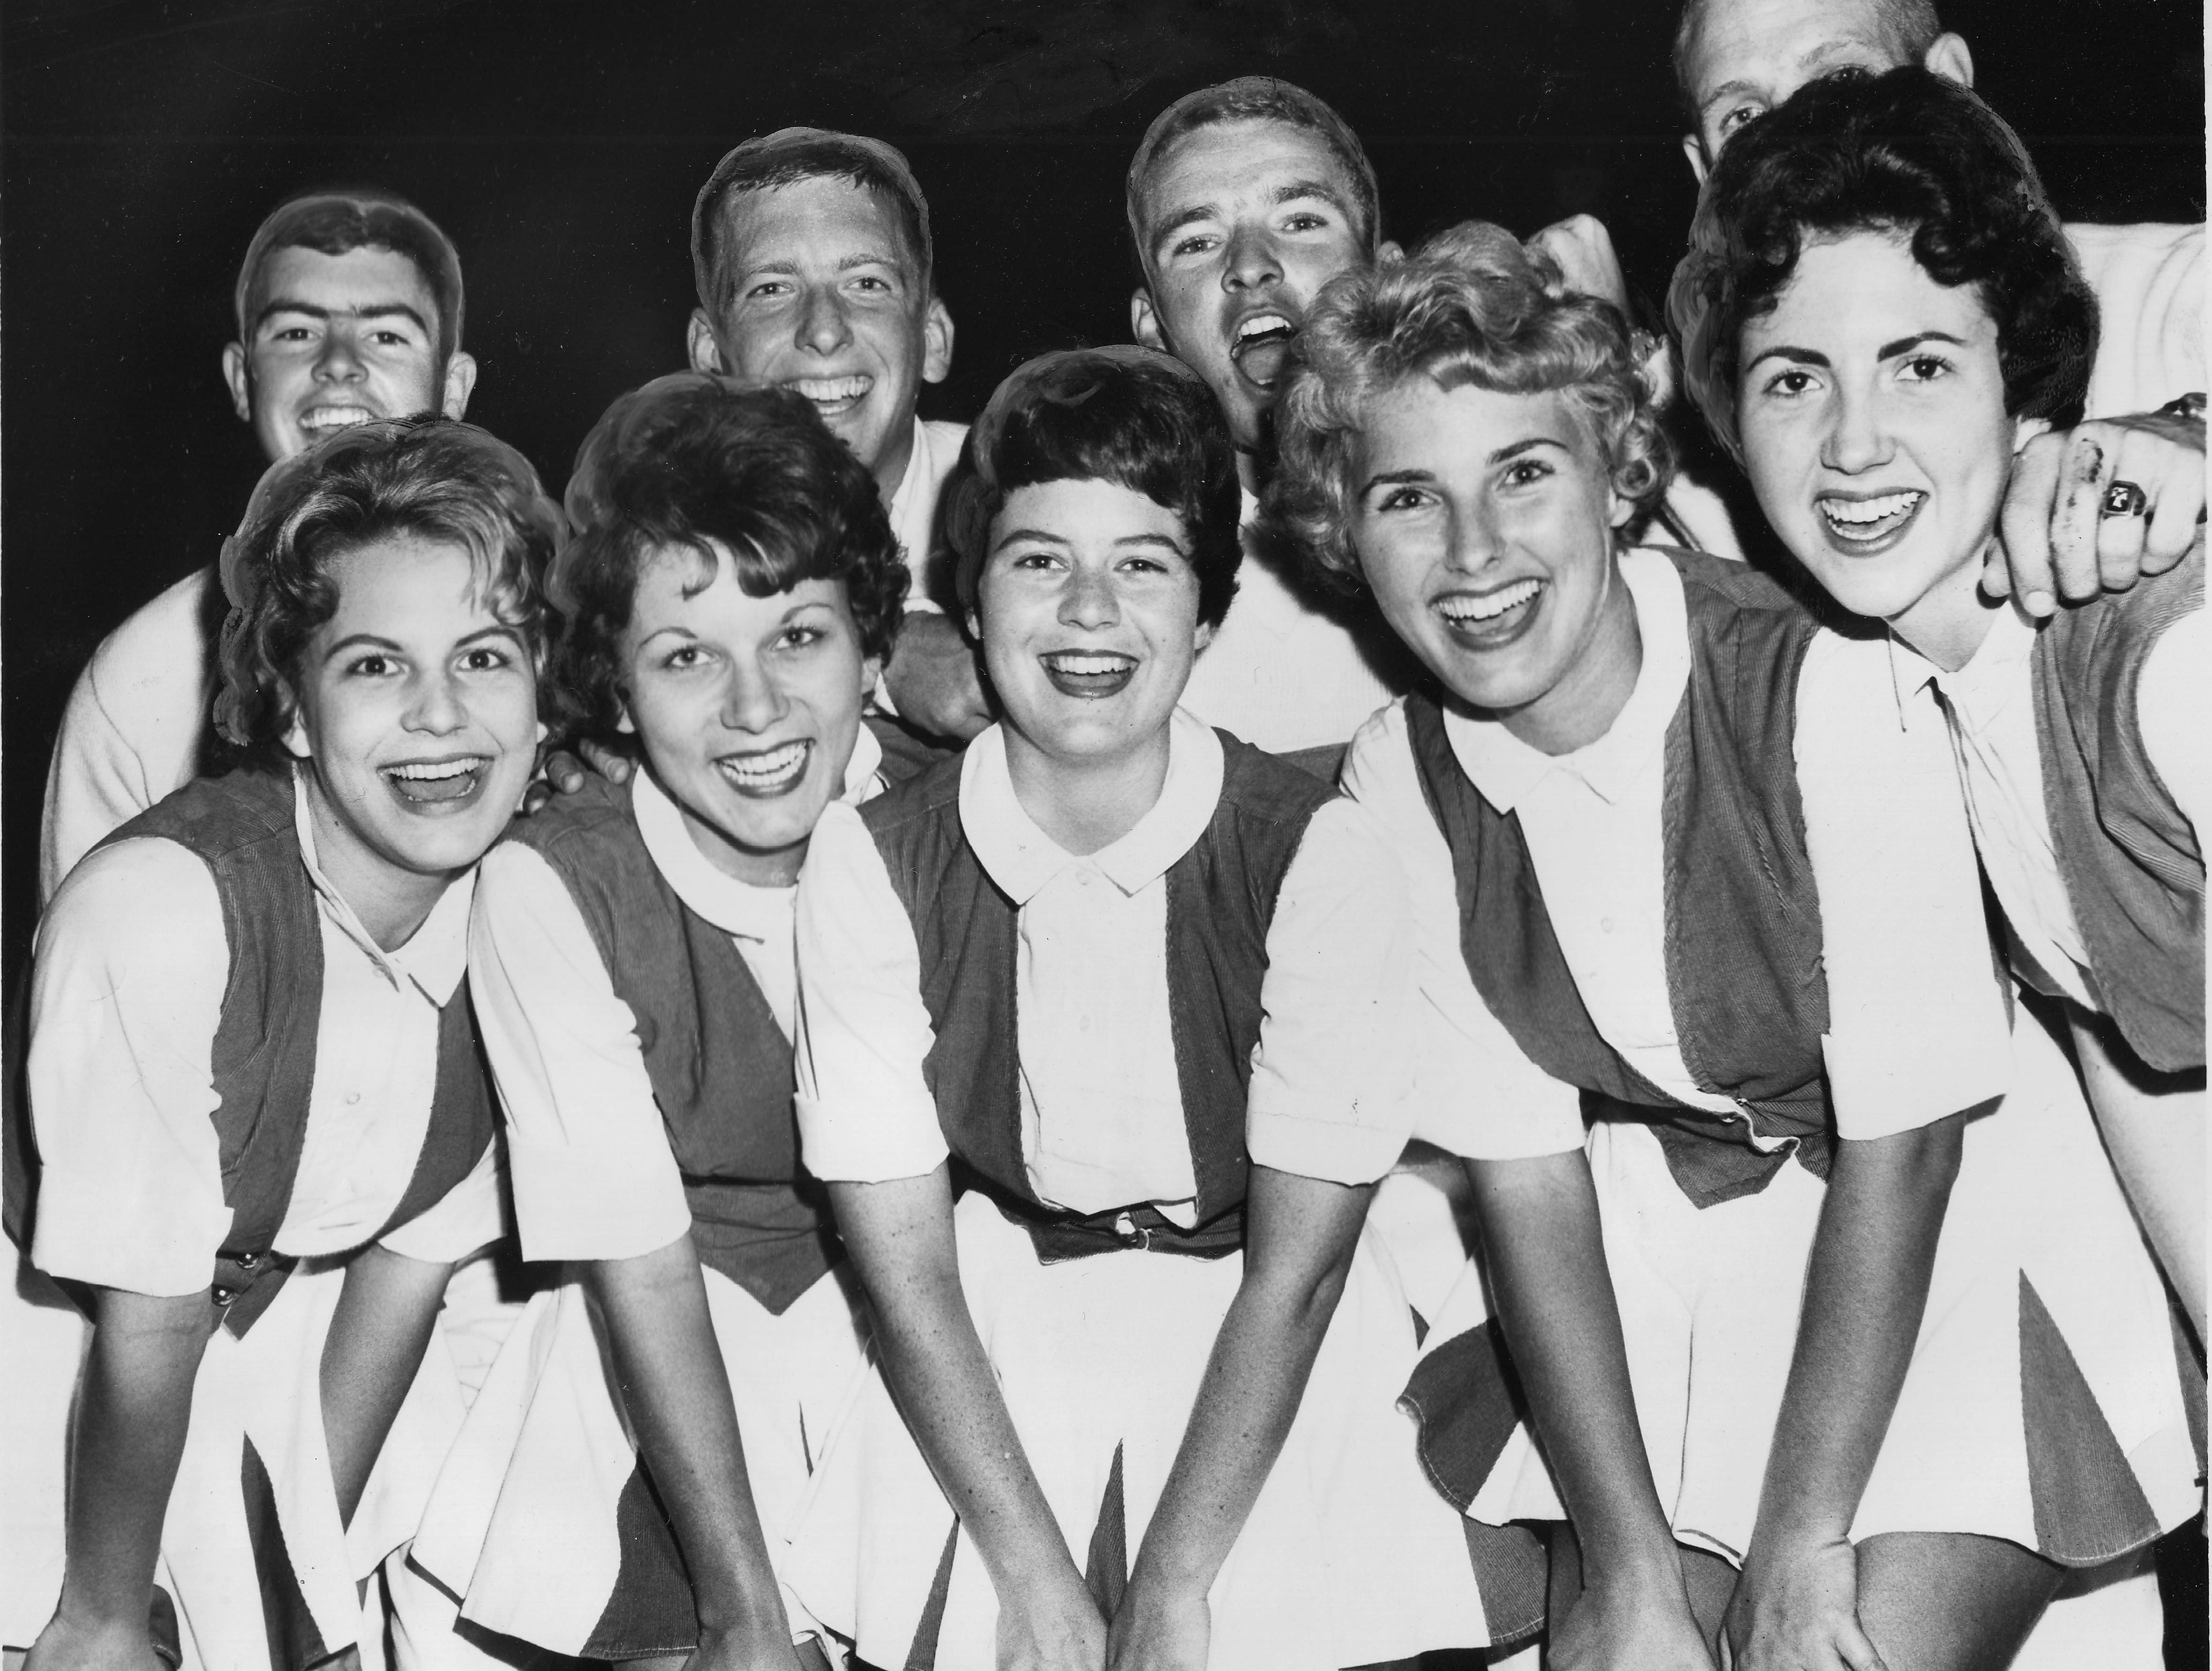 University of Tennessee cheerleaders are pictured on Oct. 15, 1961. Front row, from left, Janet Stanford, Dola Terry, Ann Dixon, Wallene Threadgill, and Martha Dempster. Back row, from left, Tammy Leek, Bill Cowan, Gary Meyer, and Frank Bowyer. (News Sentinel Archive)